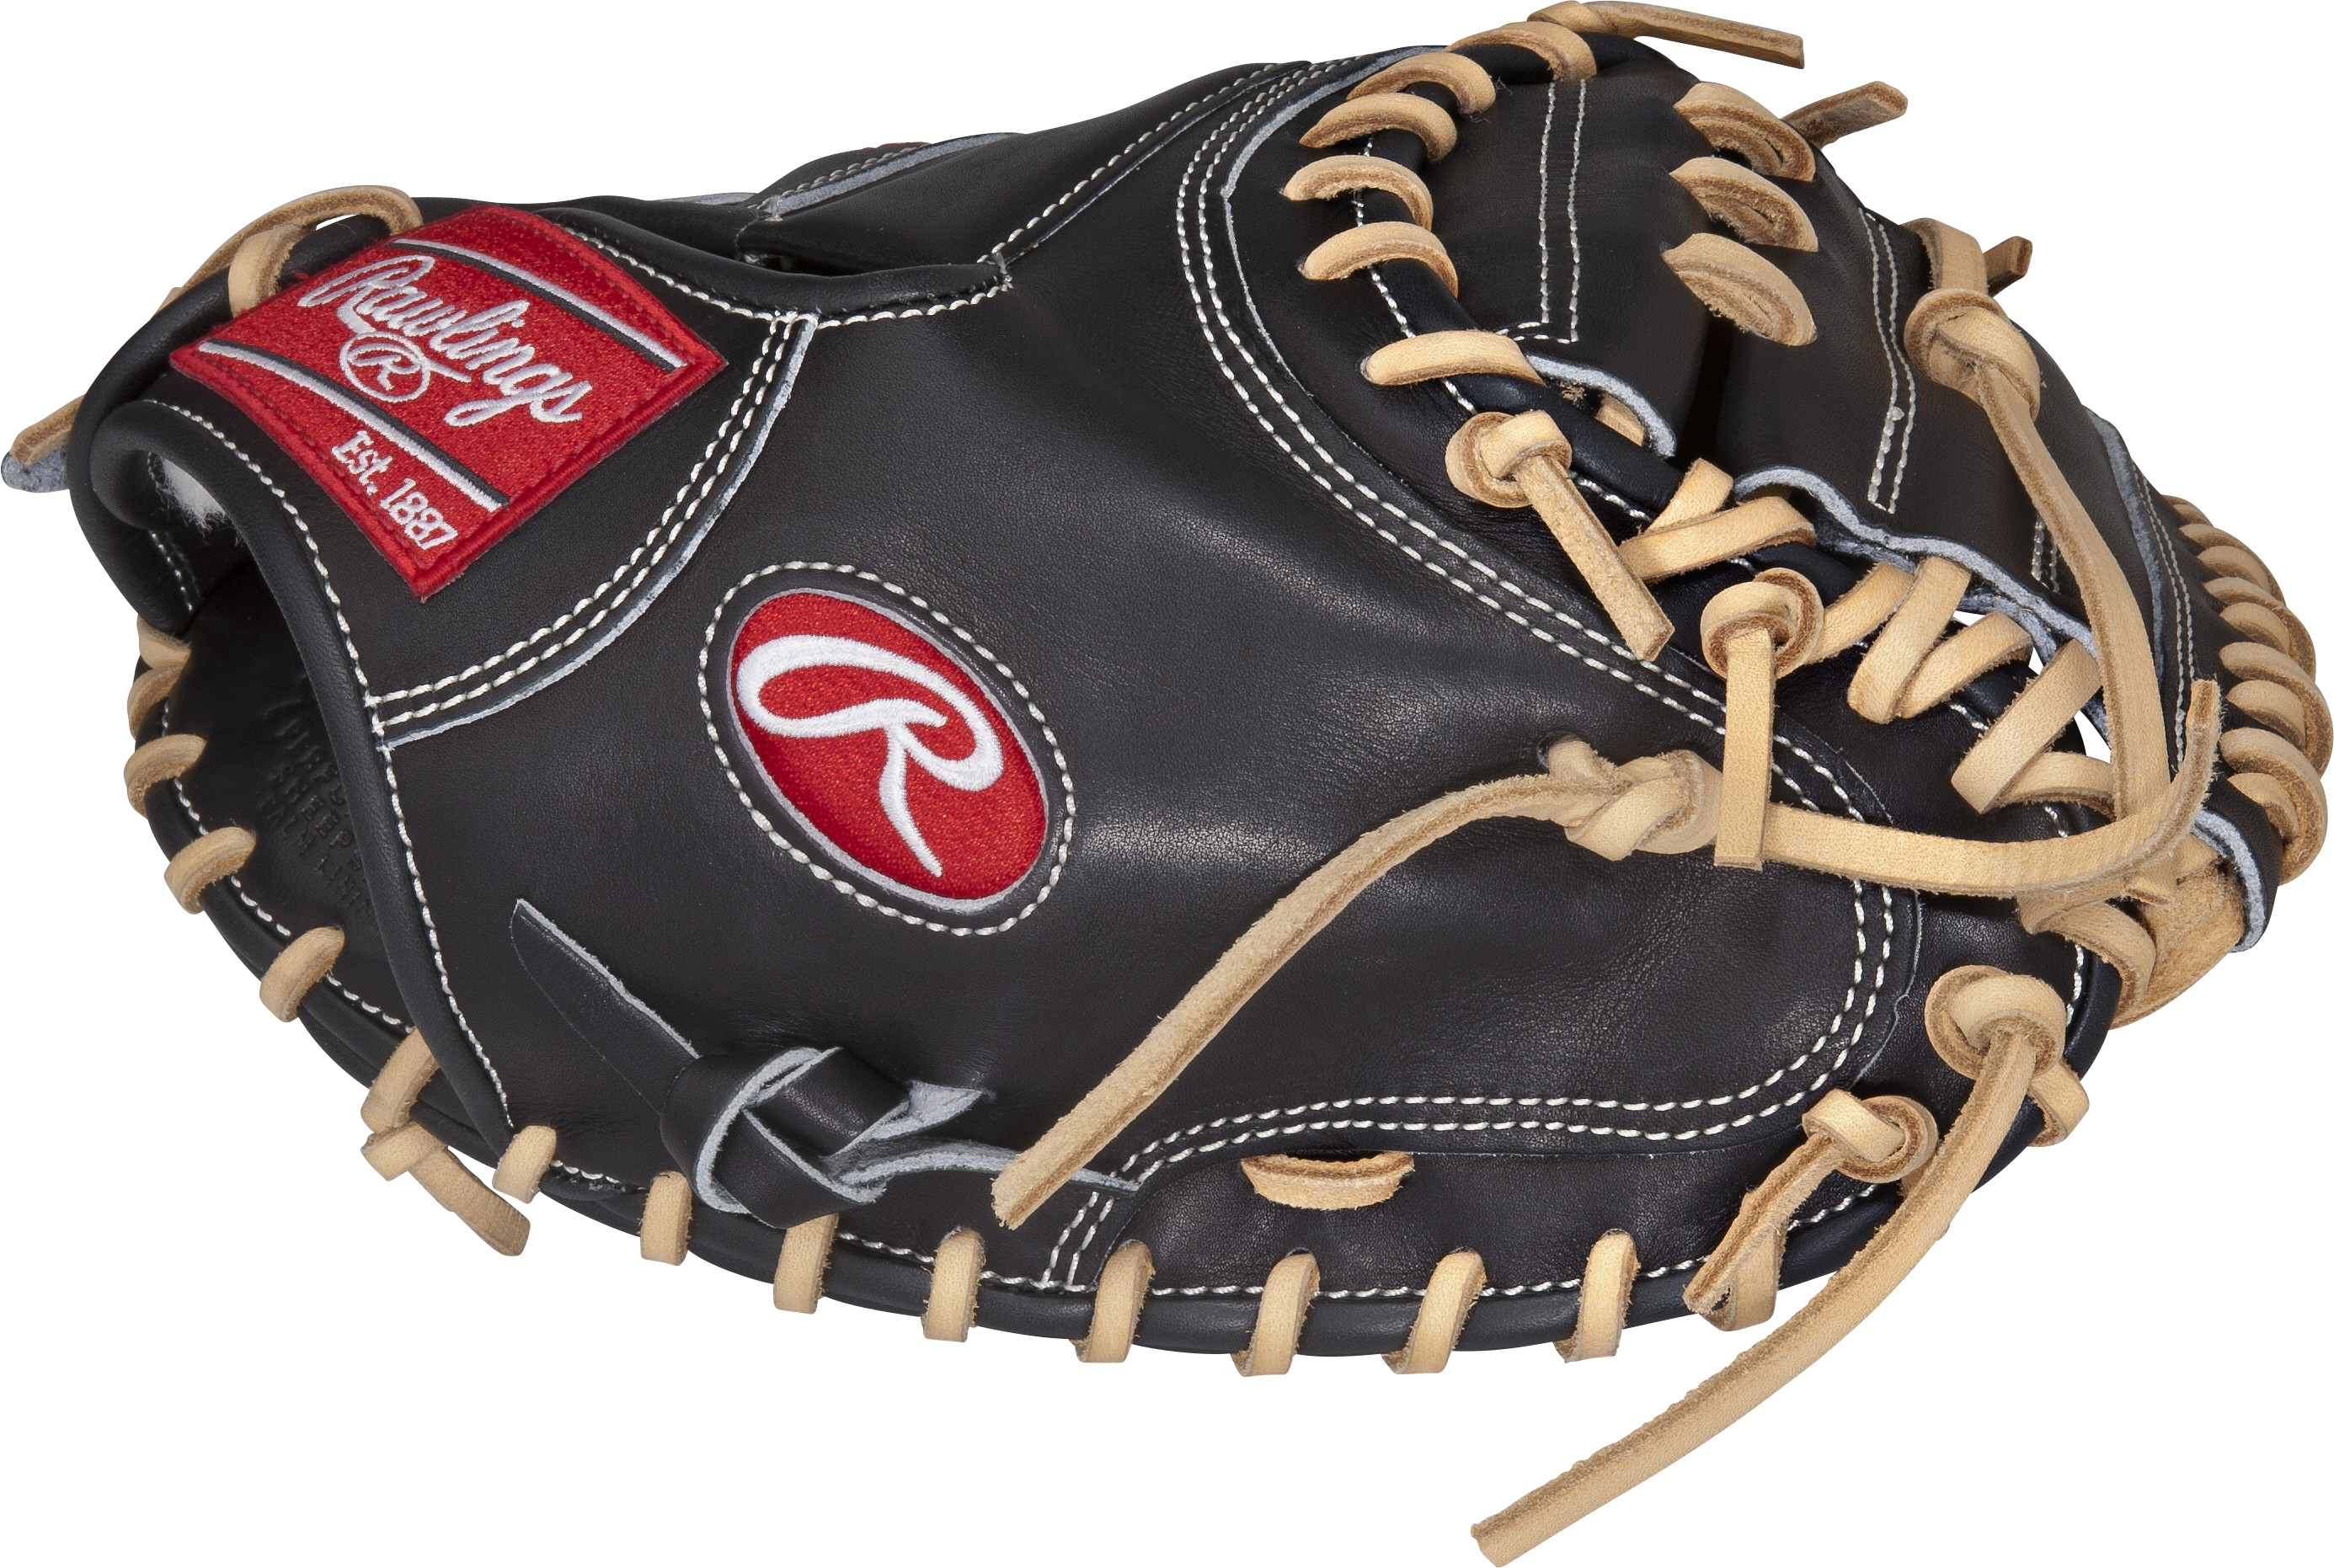 http://www.bestbatdeals.com/images/gloves/rawlings/PROSCM33B_thumb.jpg